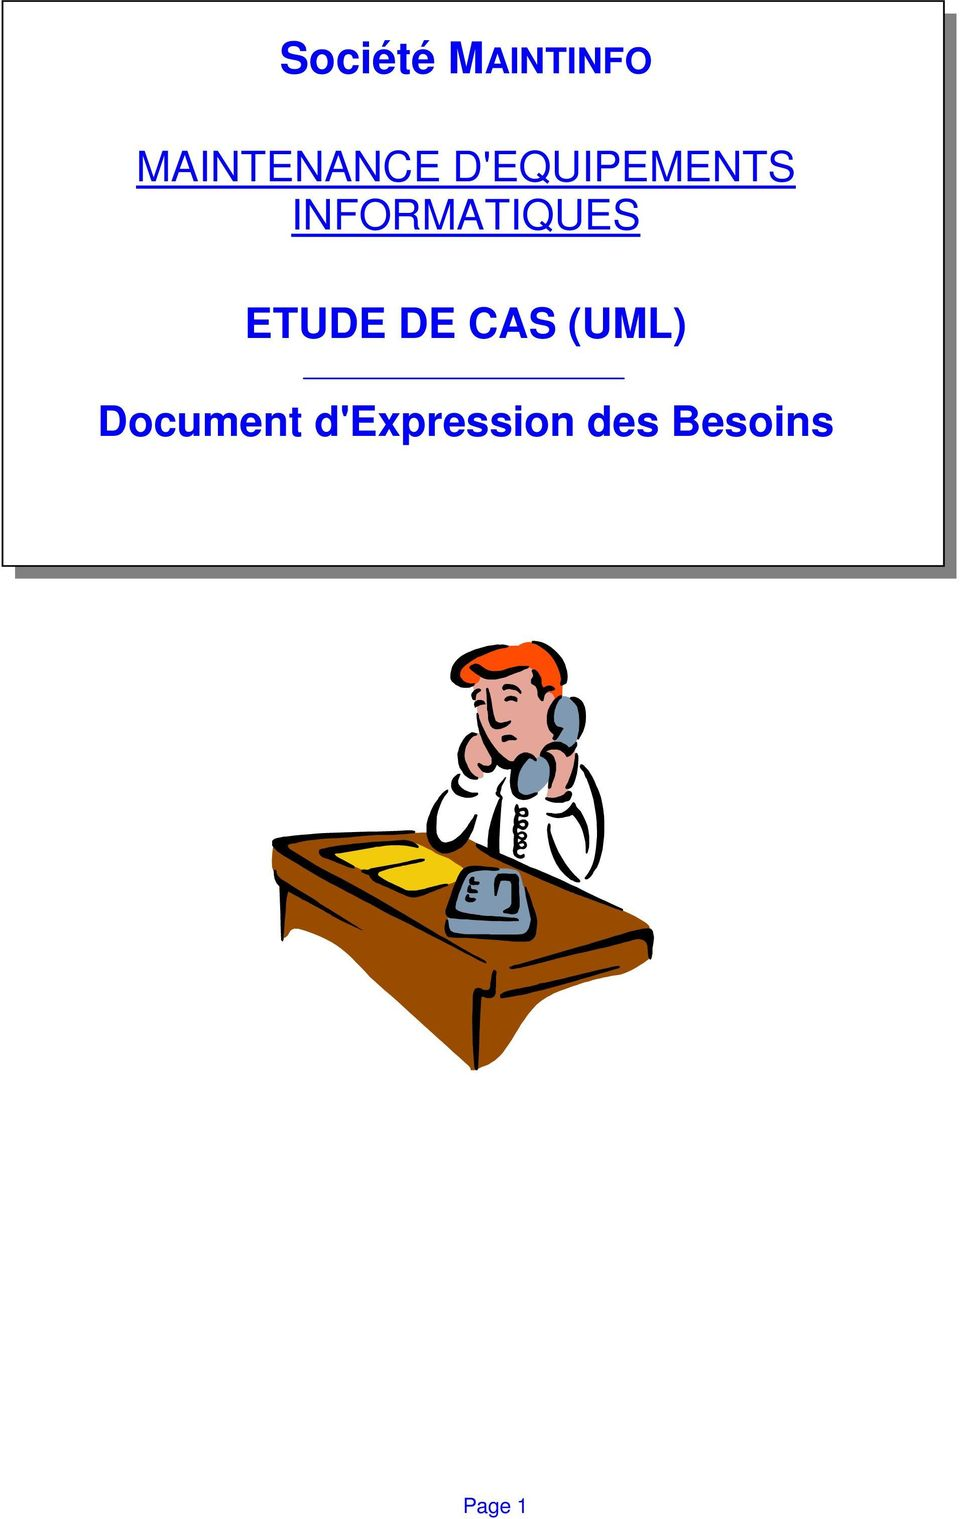 ETUDE DE CAS (UML) Document